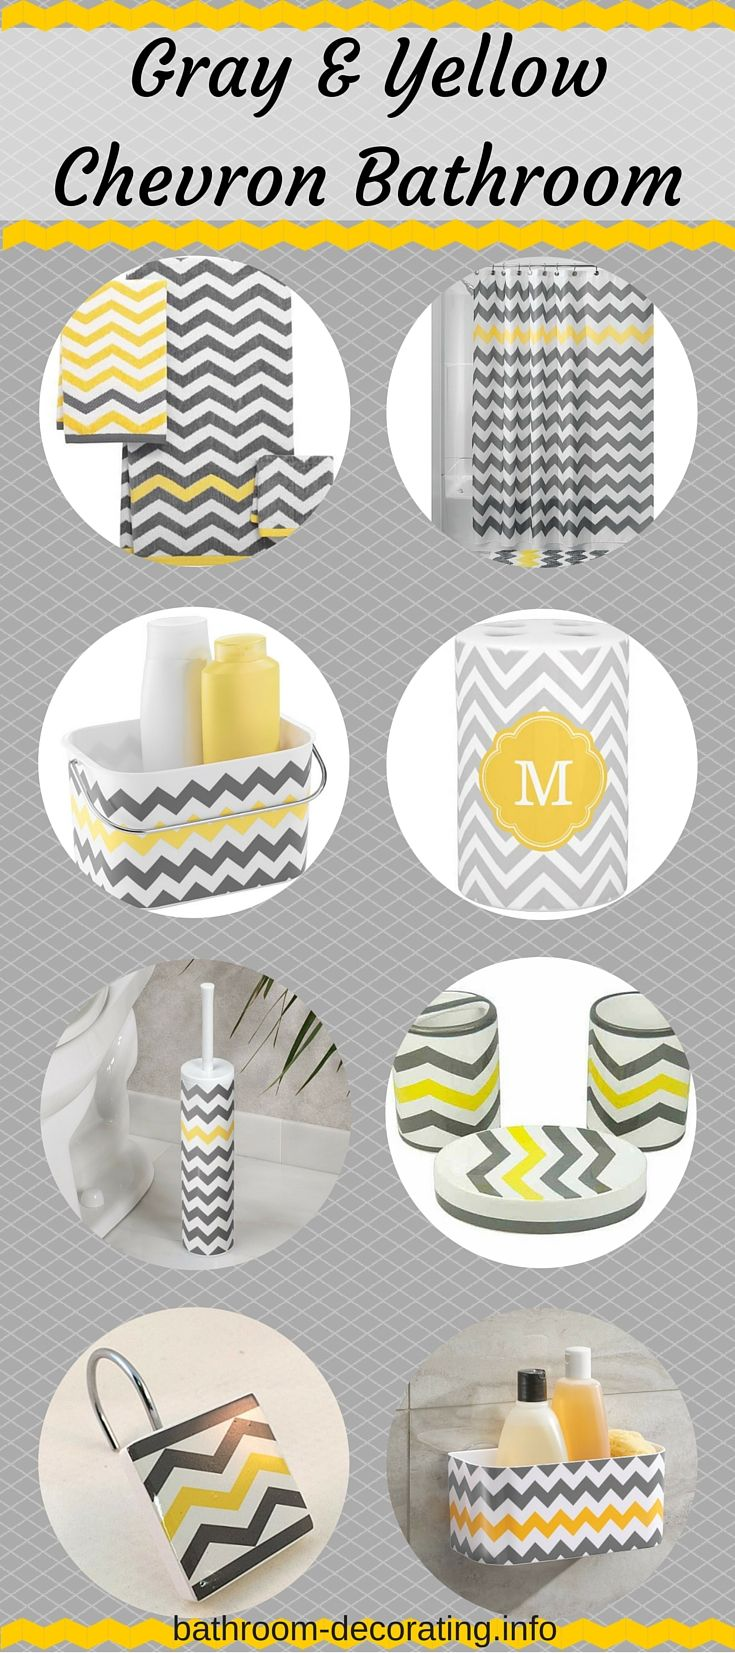 Trendy gray and yellow chevron bathroom decor or choose your own color combo